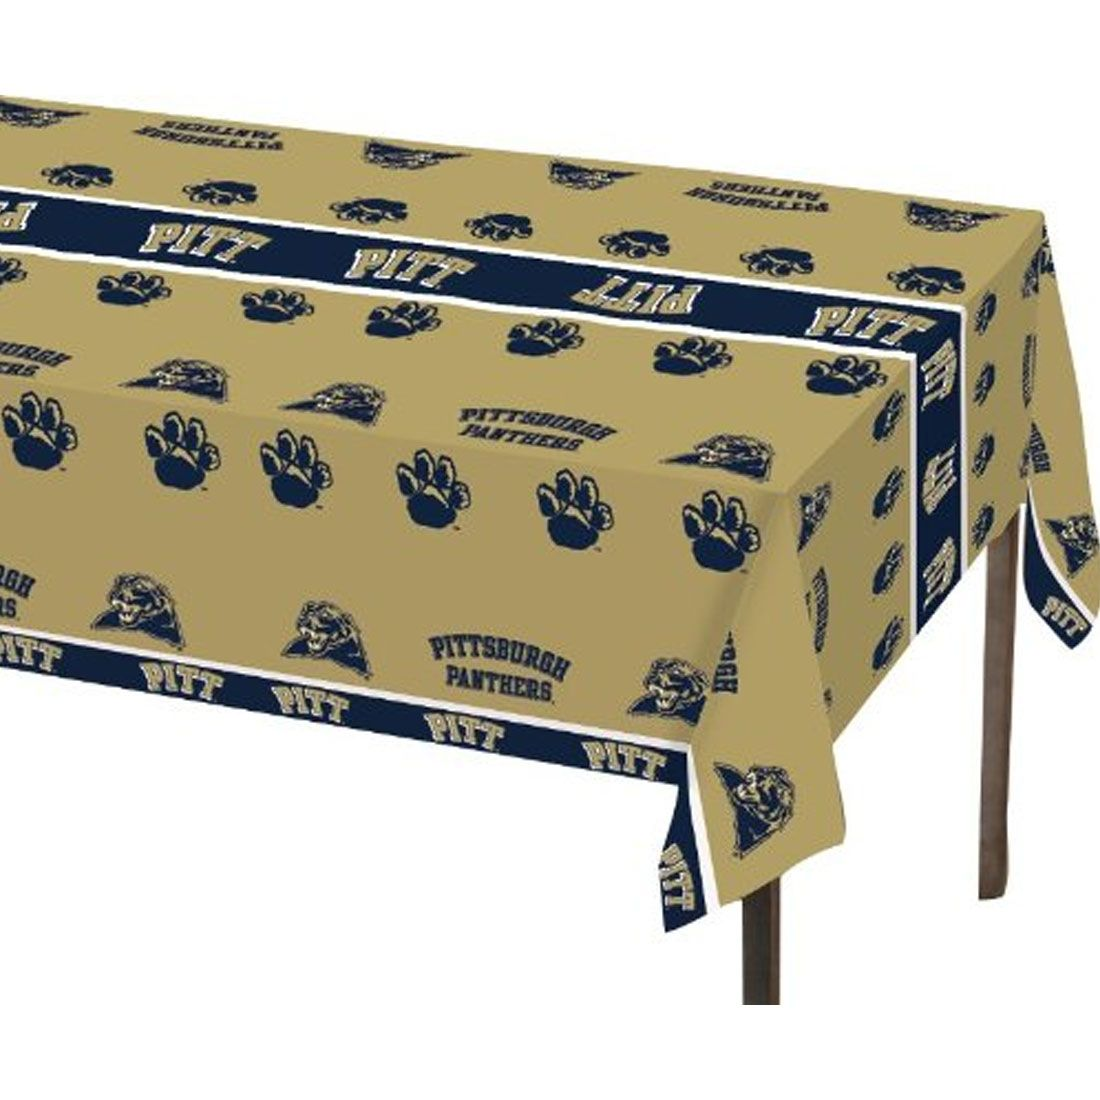 Univ of Pittsburgh 54 x 108 Plastic Tablecover/Case of 12